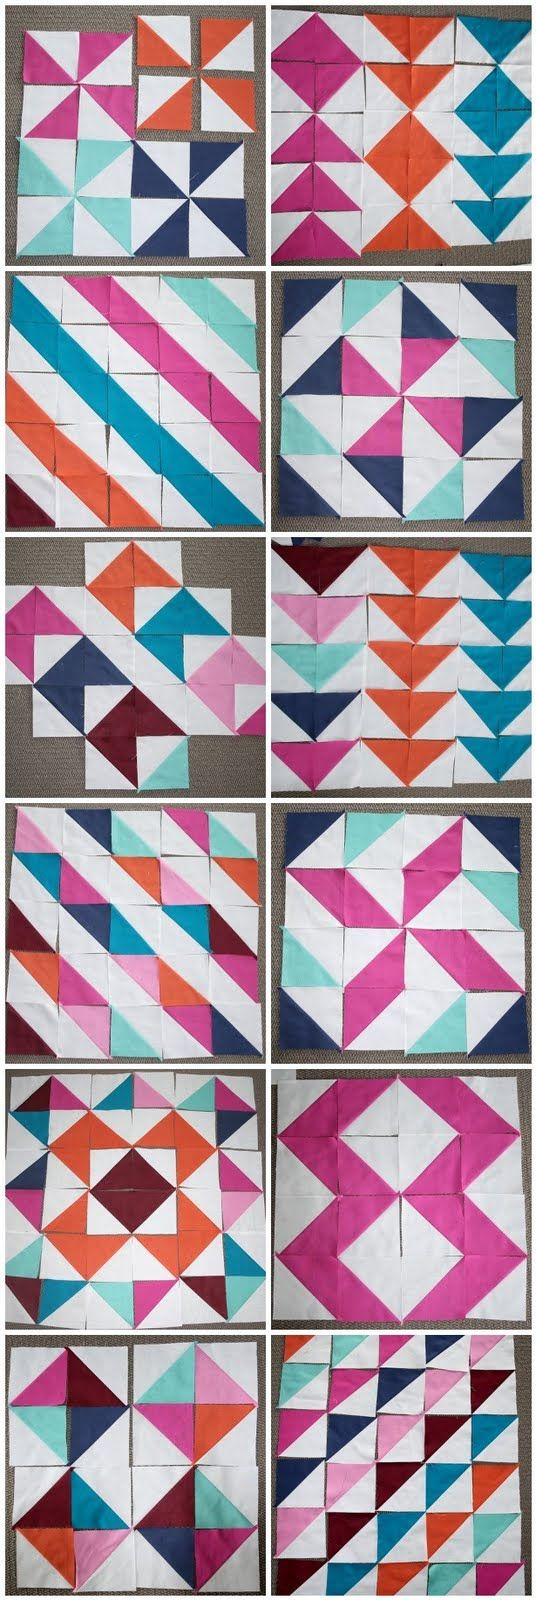 Best 25+ Half square triangles ideas on Pinterest | Half square ... : half square triangle quilt layouts - Adamdwight.com